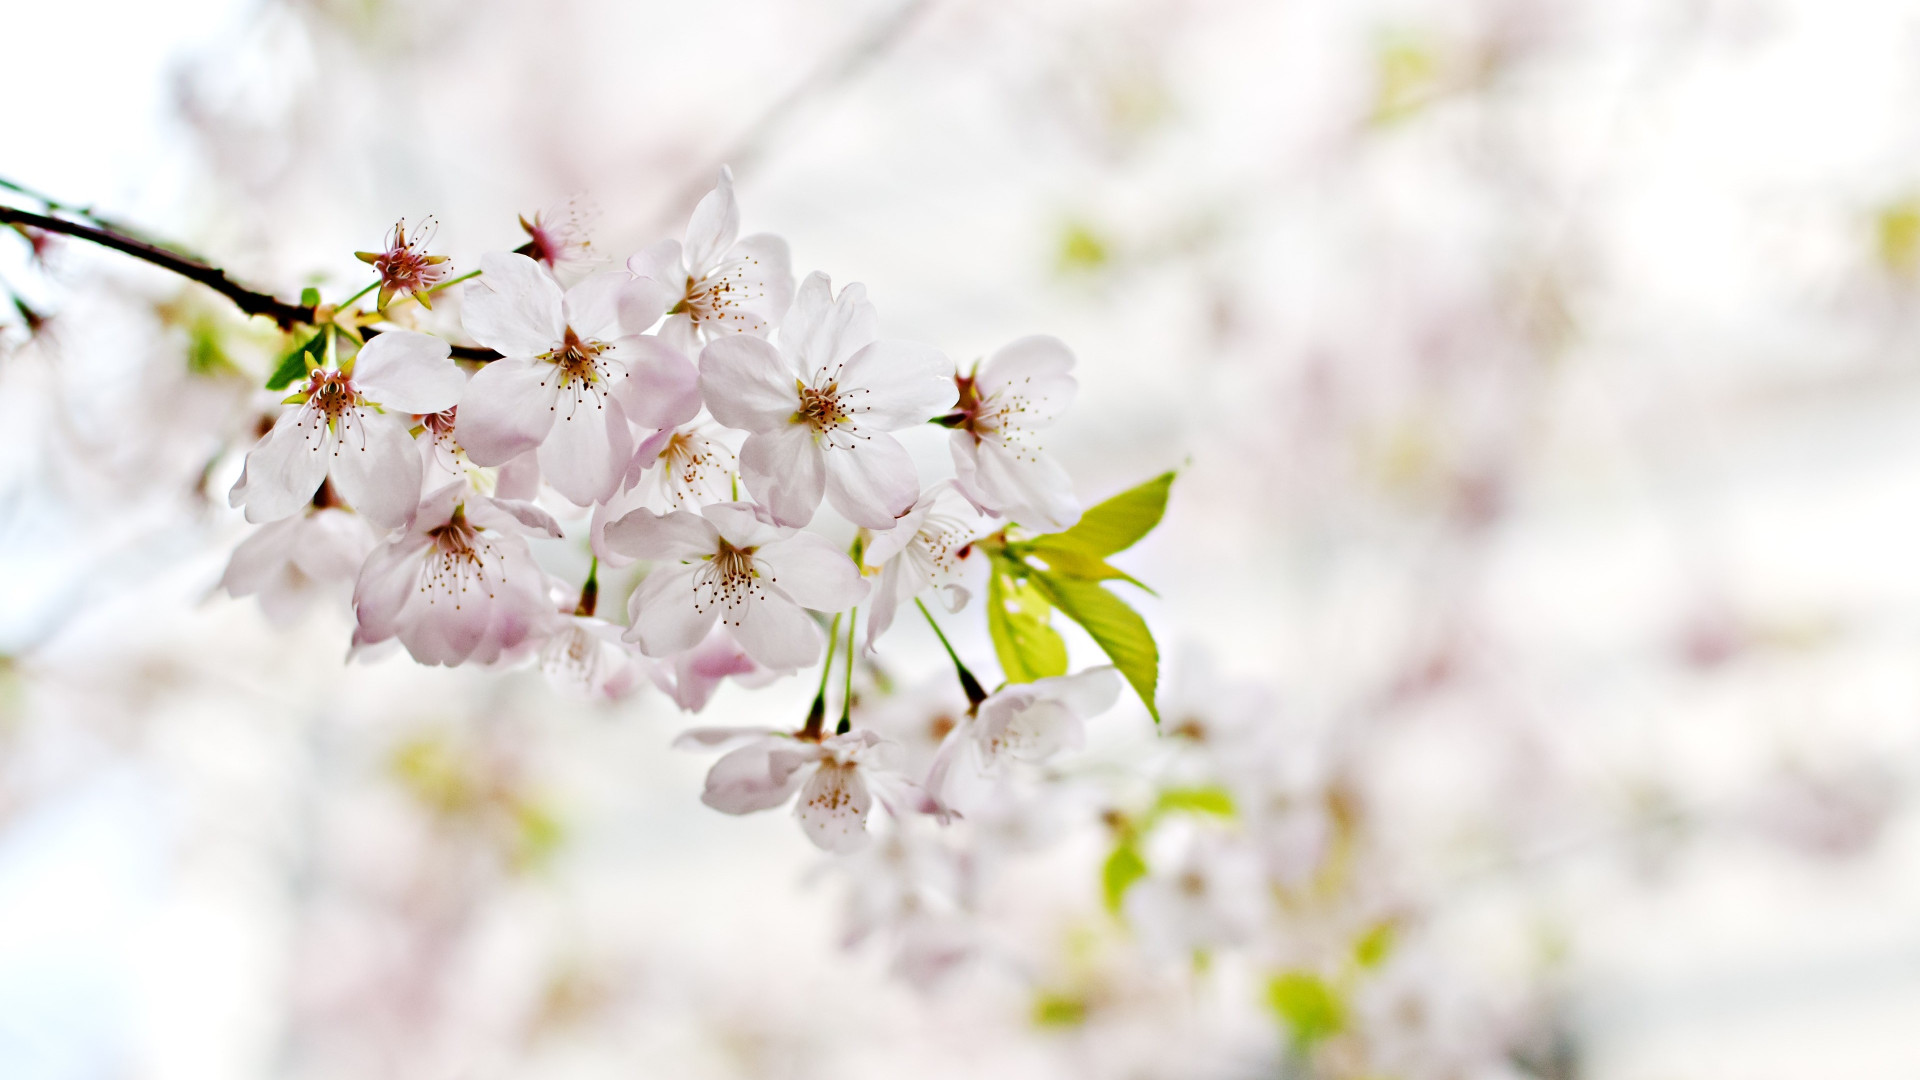 Cherry Blossoms. Flowers of Spring | 1920x1080 wallpaper